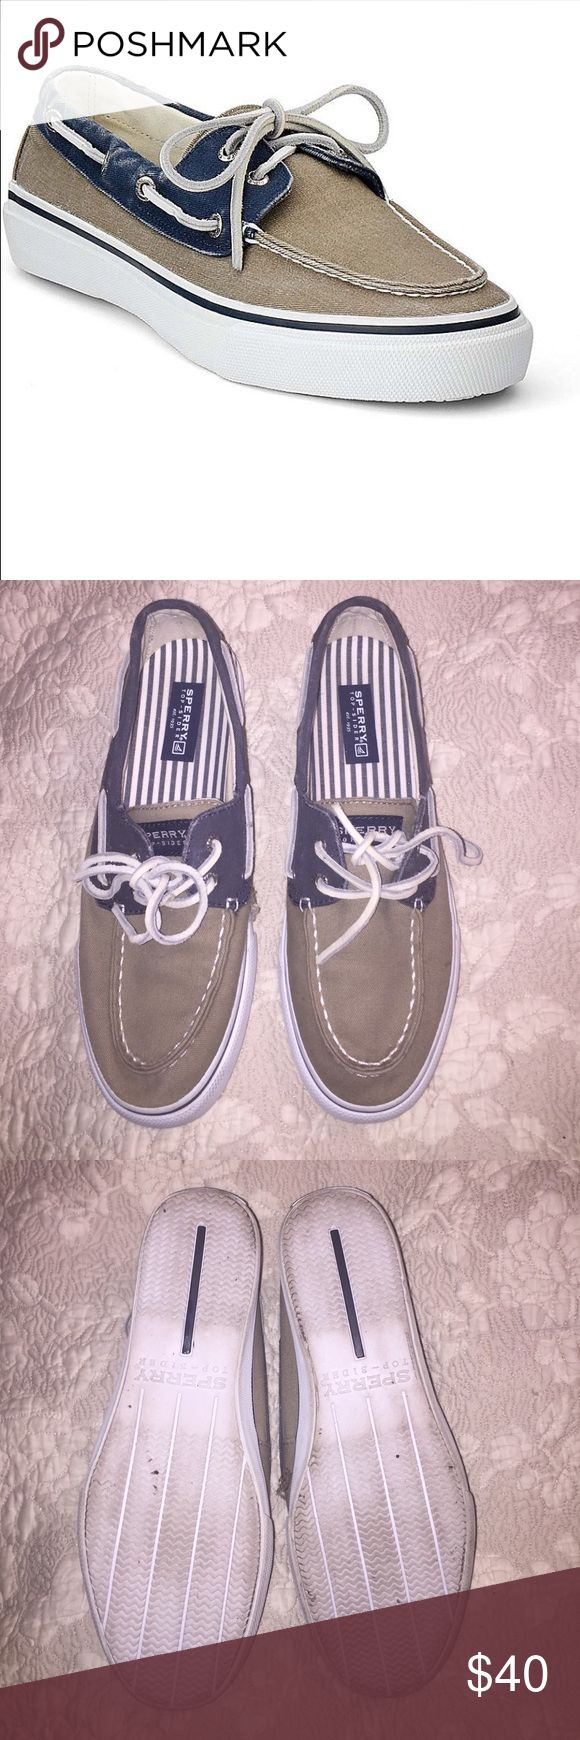 Sperry Top-Sider Men's Sperry Top-sides canvas shoes. Leather ties. Hardly worn. No sign of wear on uppers. Size men's 8. Navy and taupe. Sperry Top-Sider Shoes